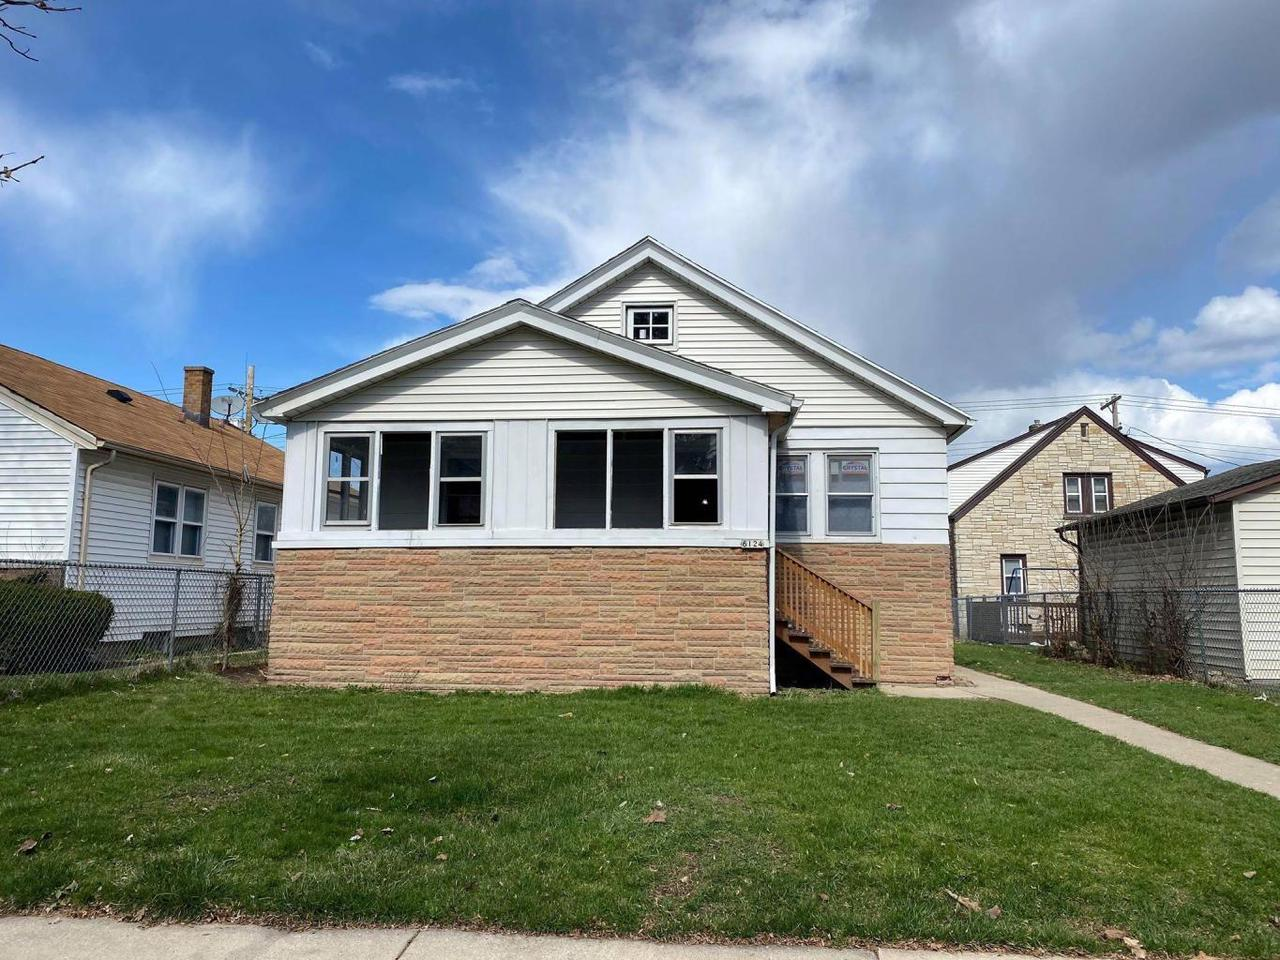 6124 W Medford Ave AVENUE, MILWAUKEE, WI 53218